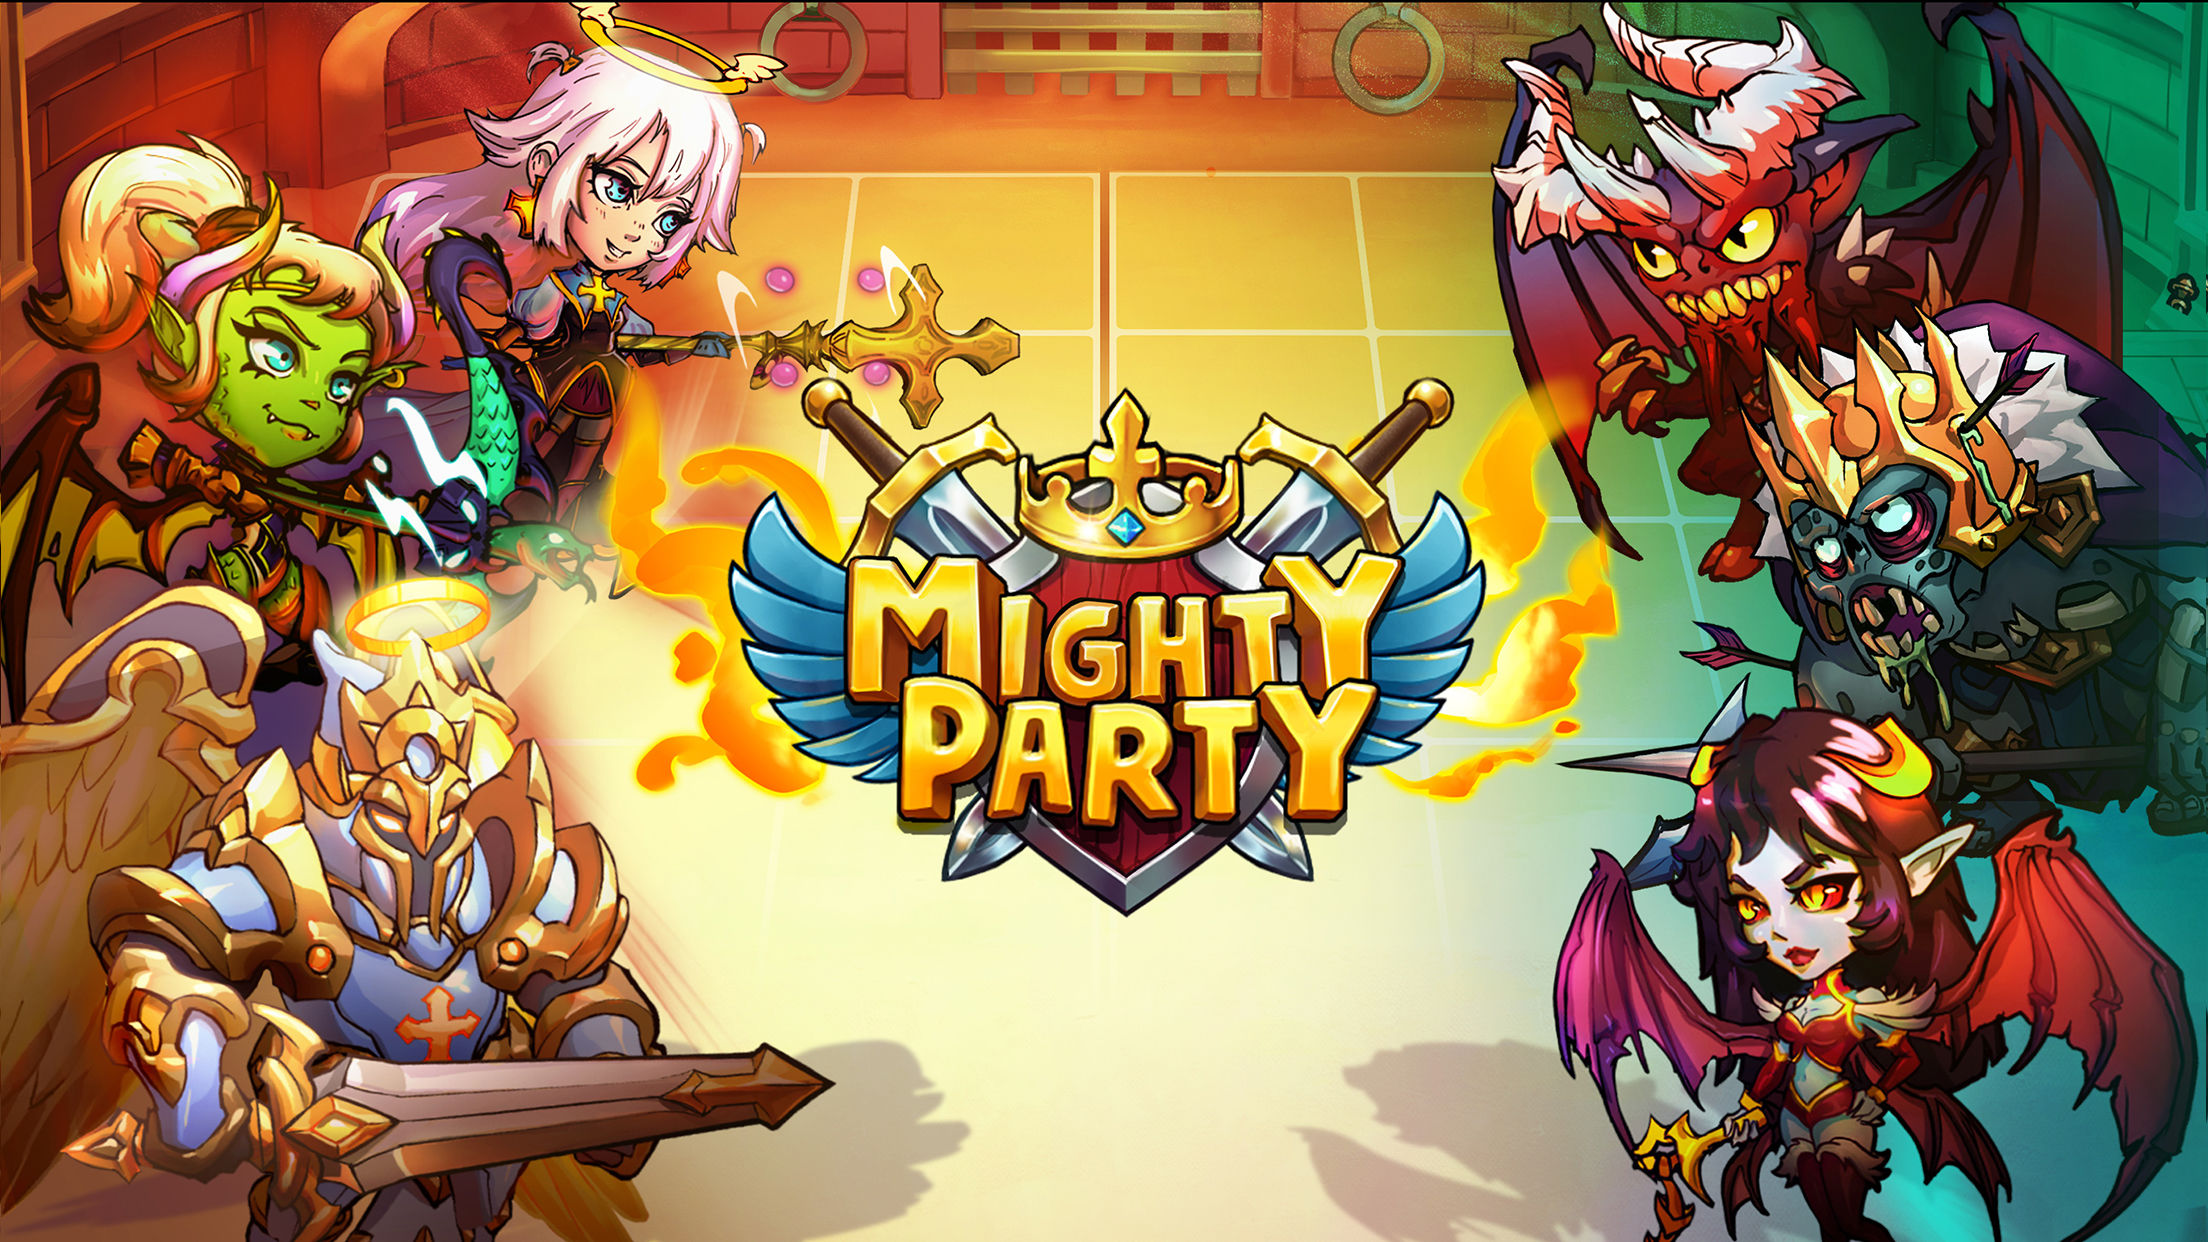 The Best Mighty Party Tips And Tricks For Beginners: Start Your Adventure Quickly